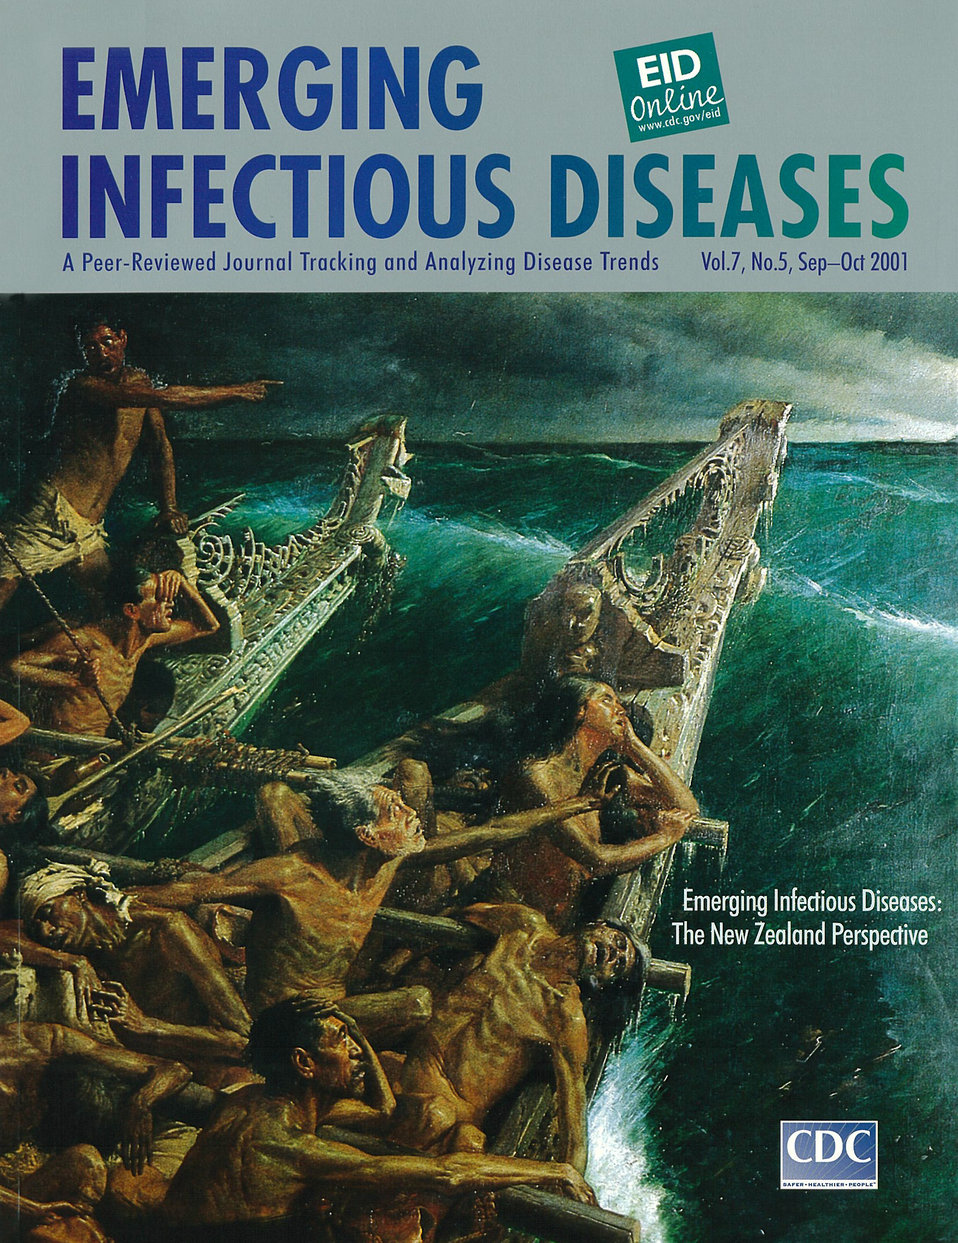 Emerging Infectious Diseases (EID) cover artwork for Volume 7, Number 5, September-October 2001 issue.